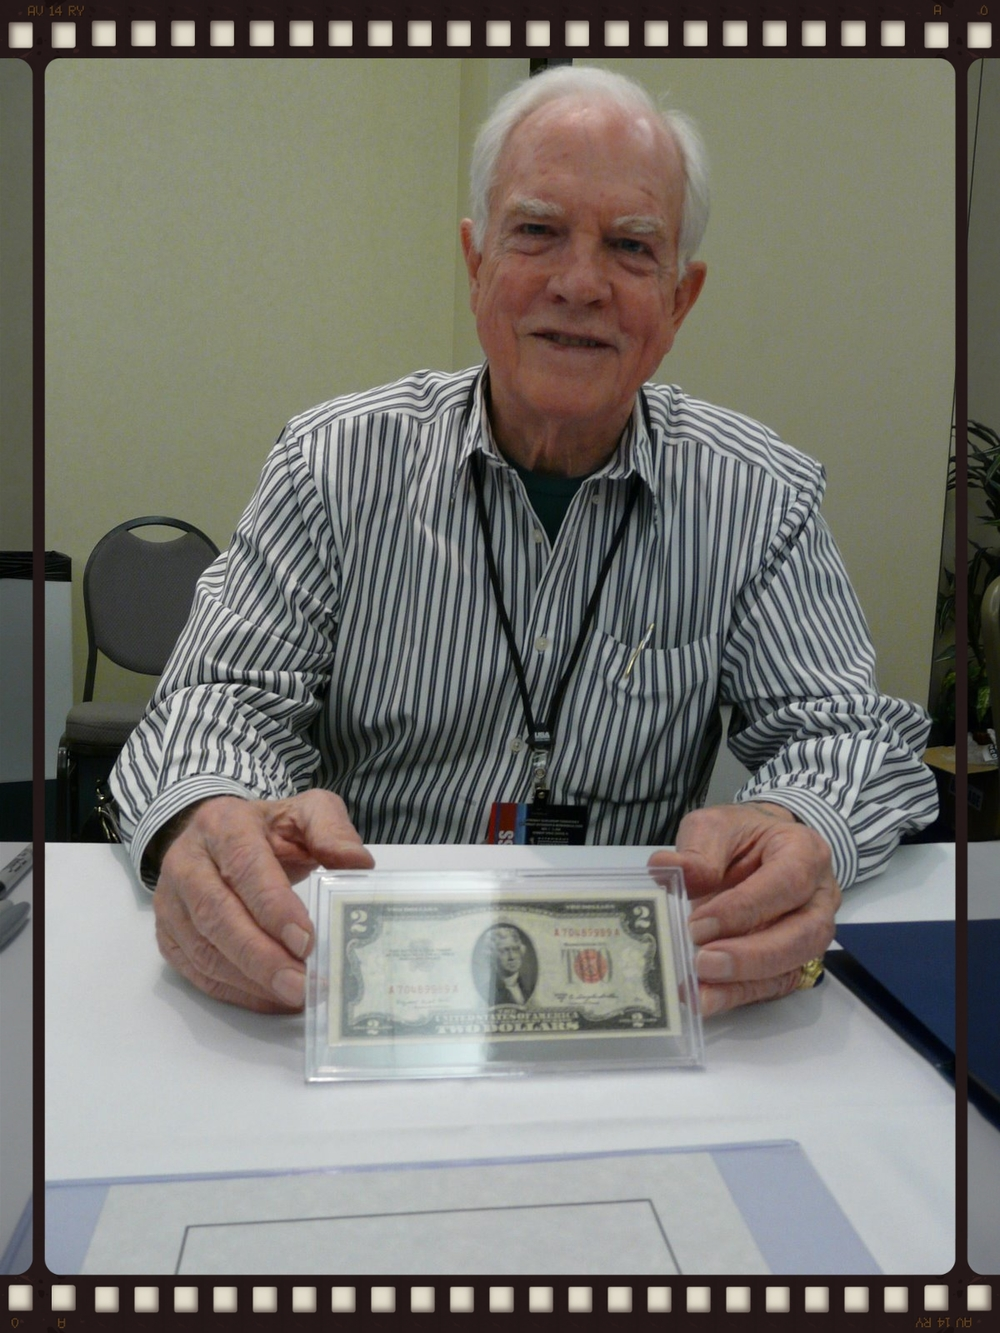 Apollo 15 Commander and moonwalker David Scott holding the flown $2 bill at the Astronaut Scholarship Foundation gathering in November of 2008.